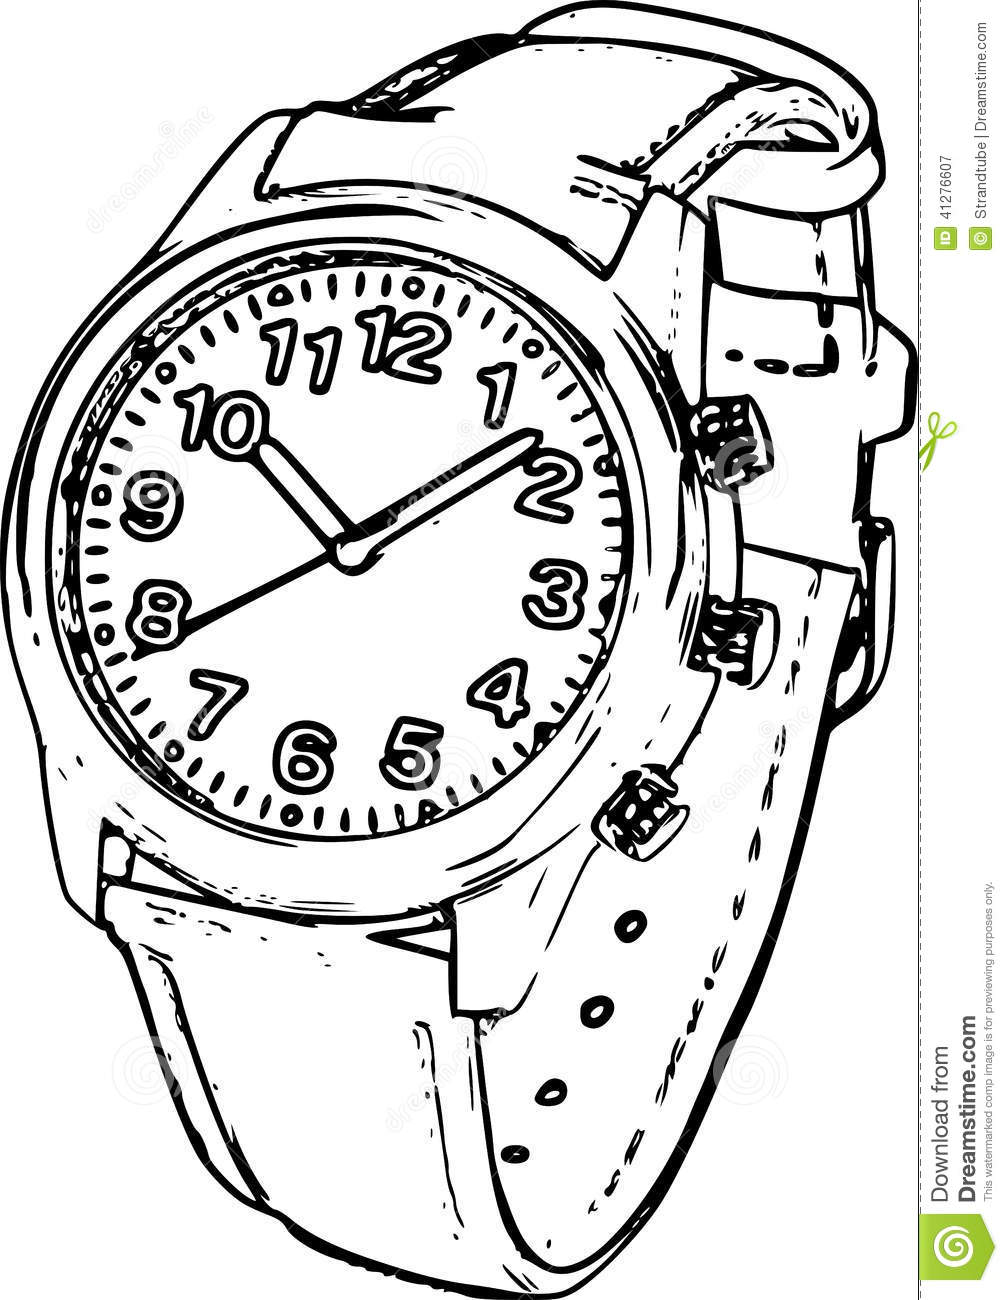 1008x1300 Wrist Watch Drawings Rolex Watch Drawing